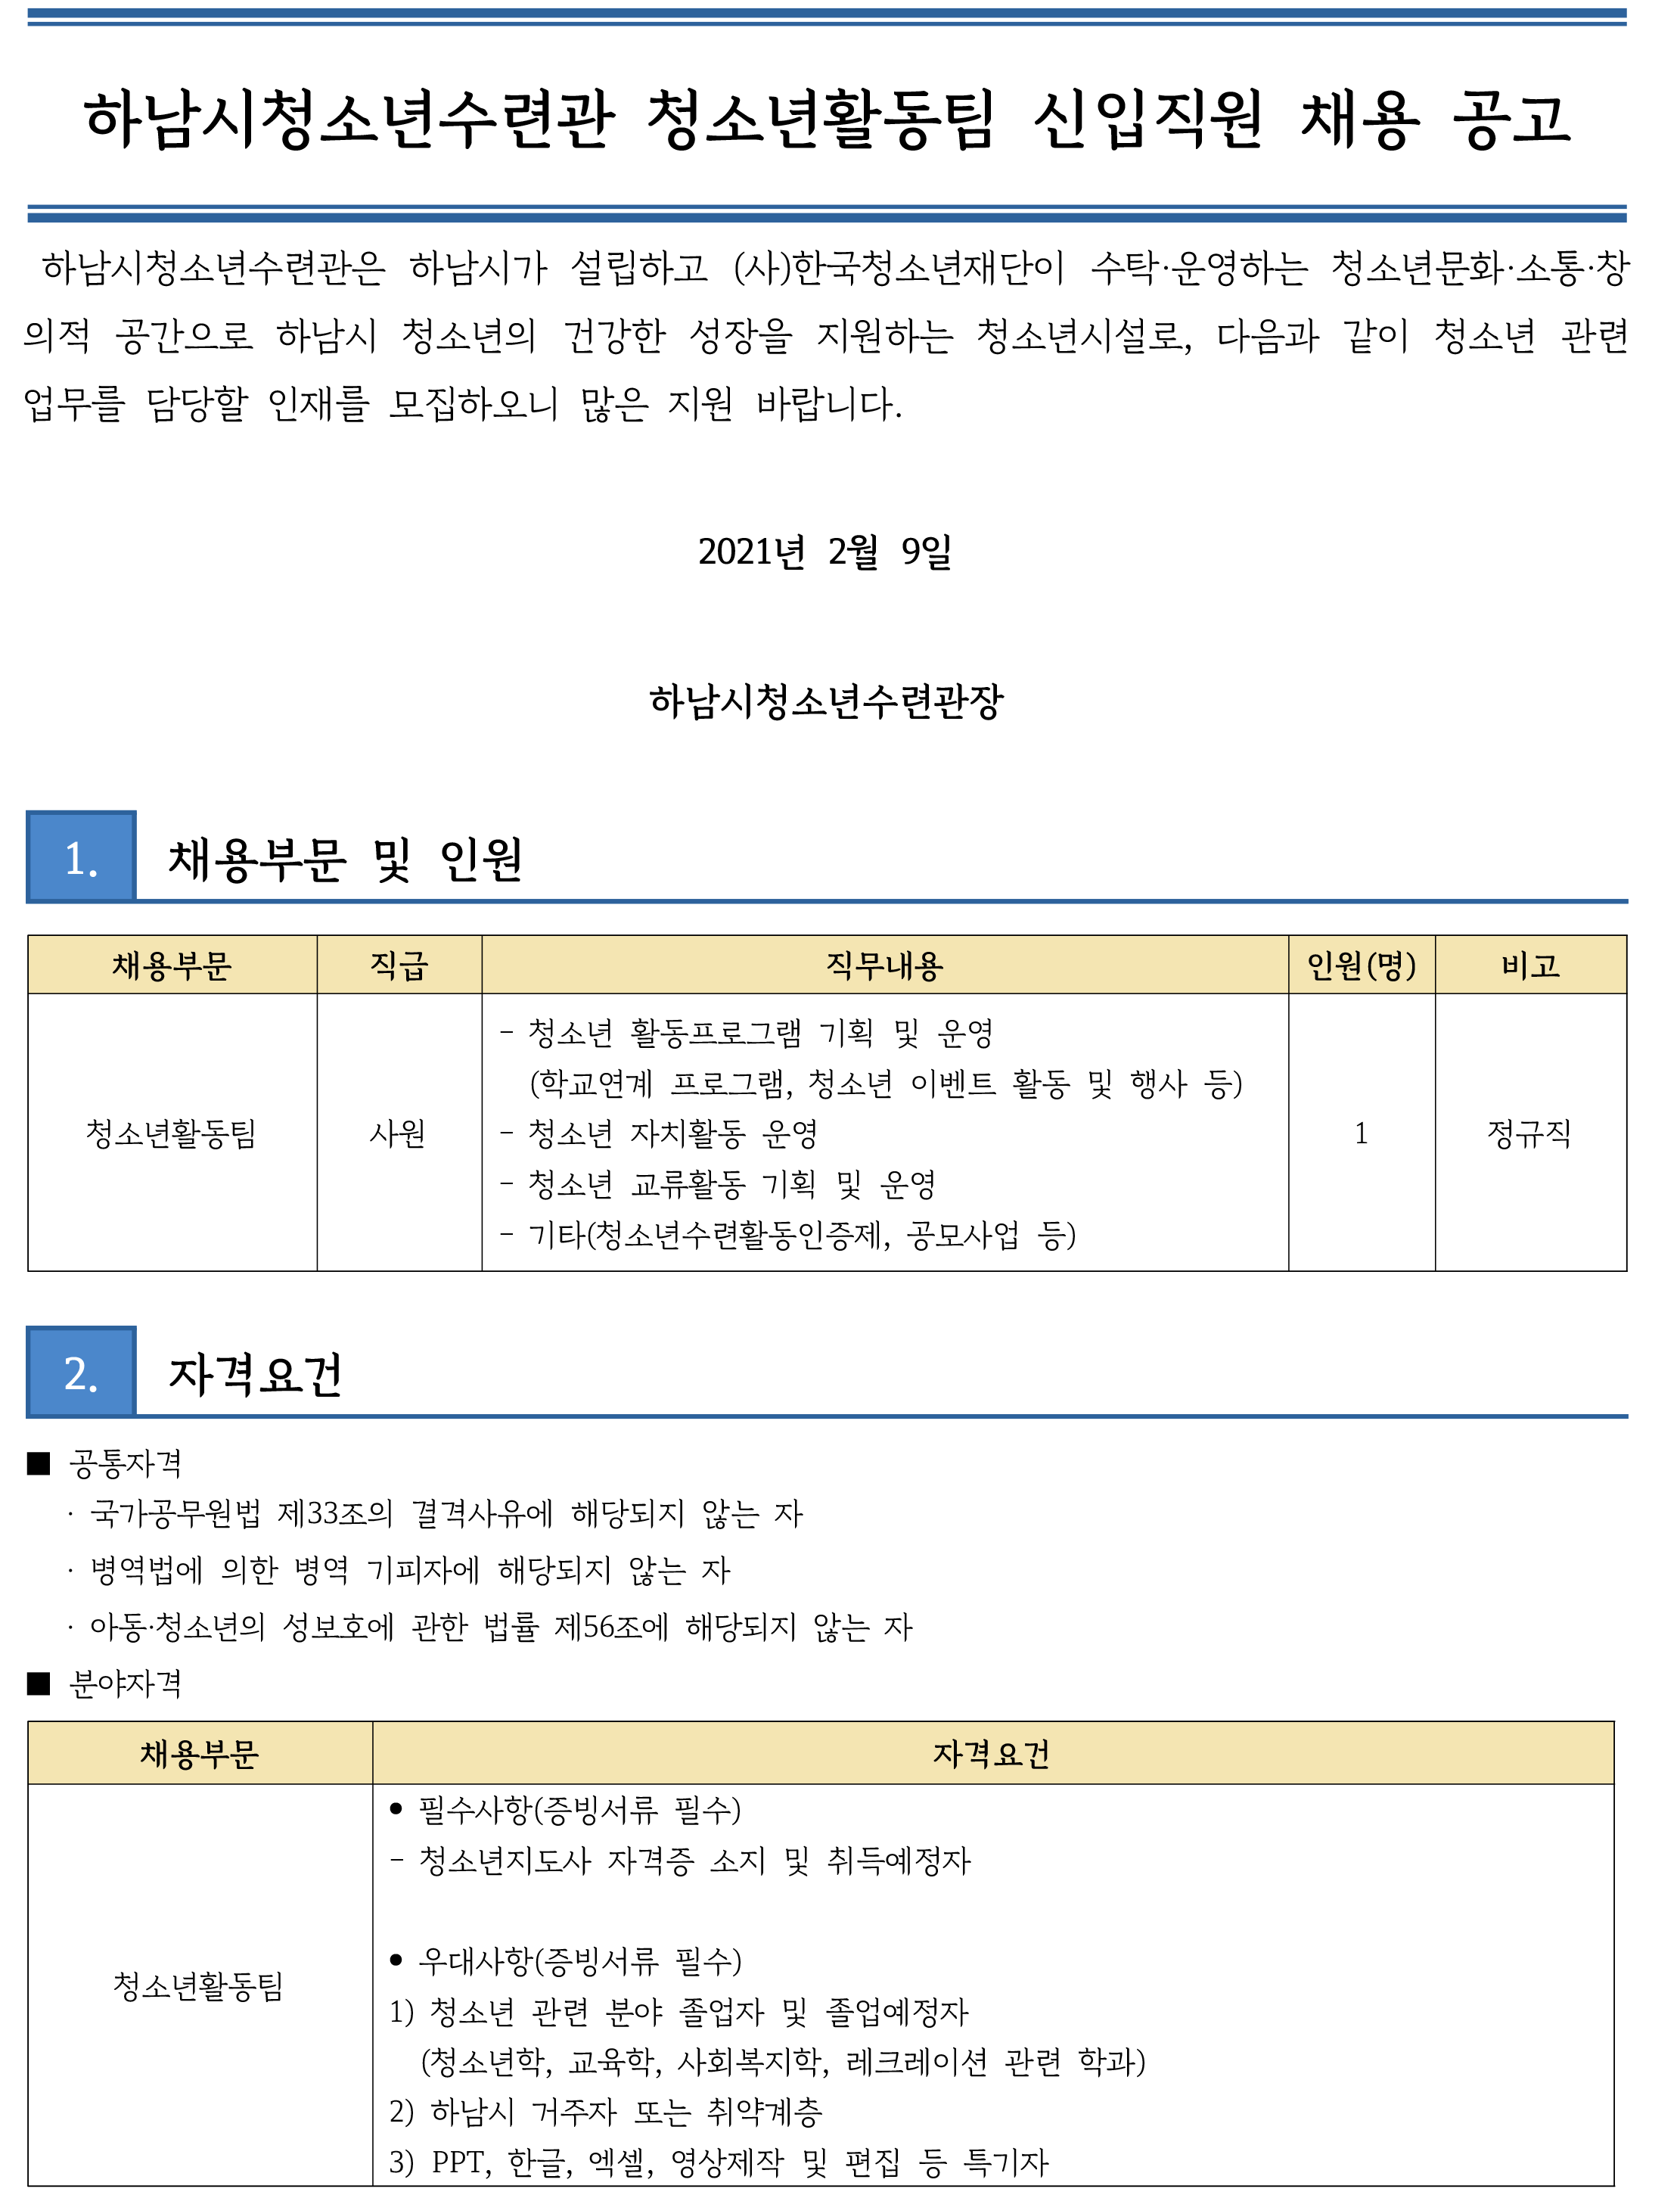 http://www.dreamyouth.or.kr/_images/notice/notice_01_20210210.png